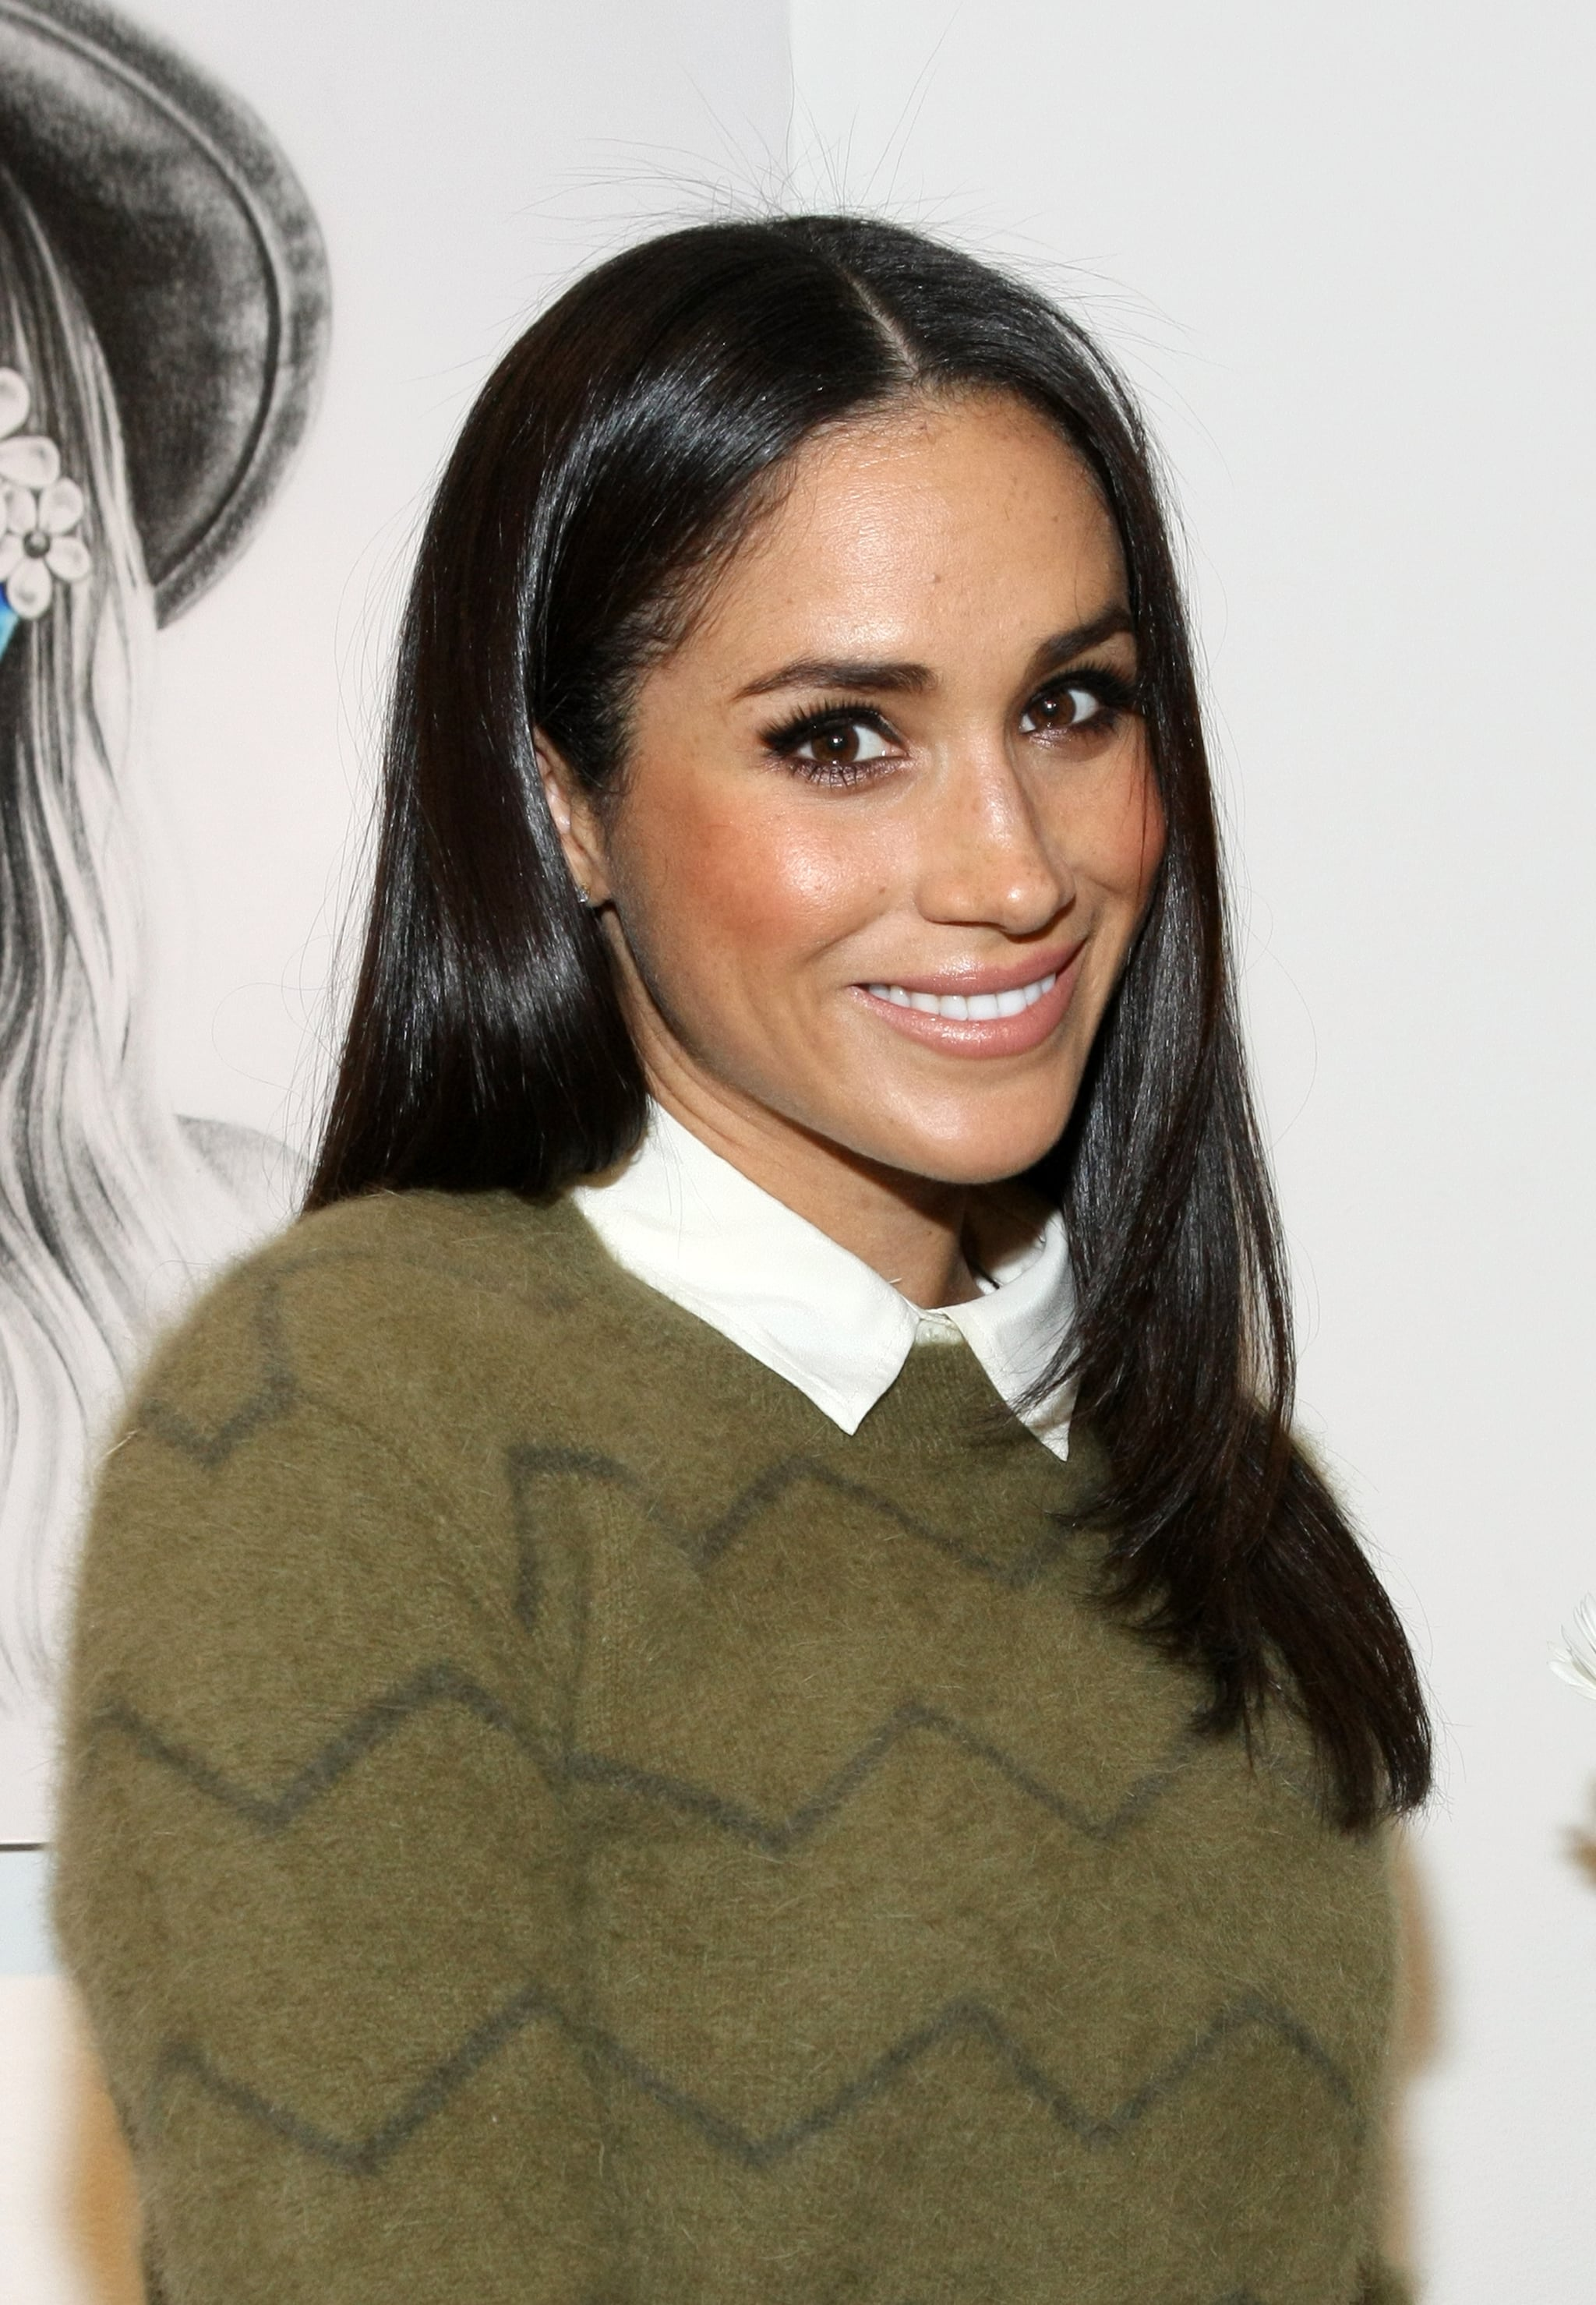 The Weirdly Empowering Reason People Are Getting Nose Jobs to Look Like Meghan Markle images 1